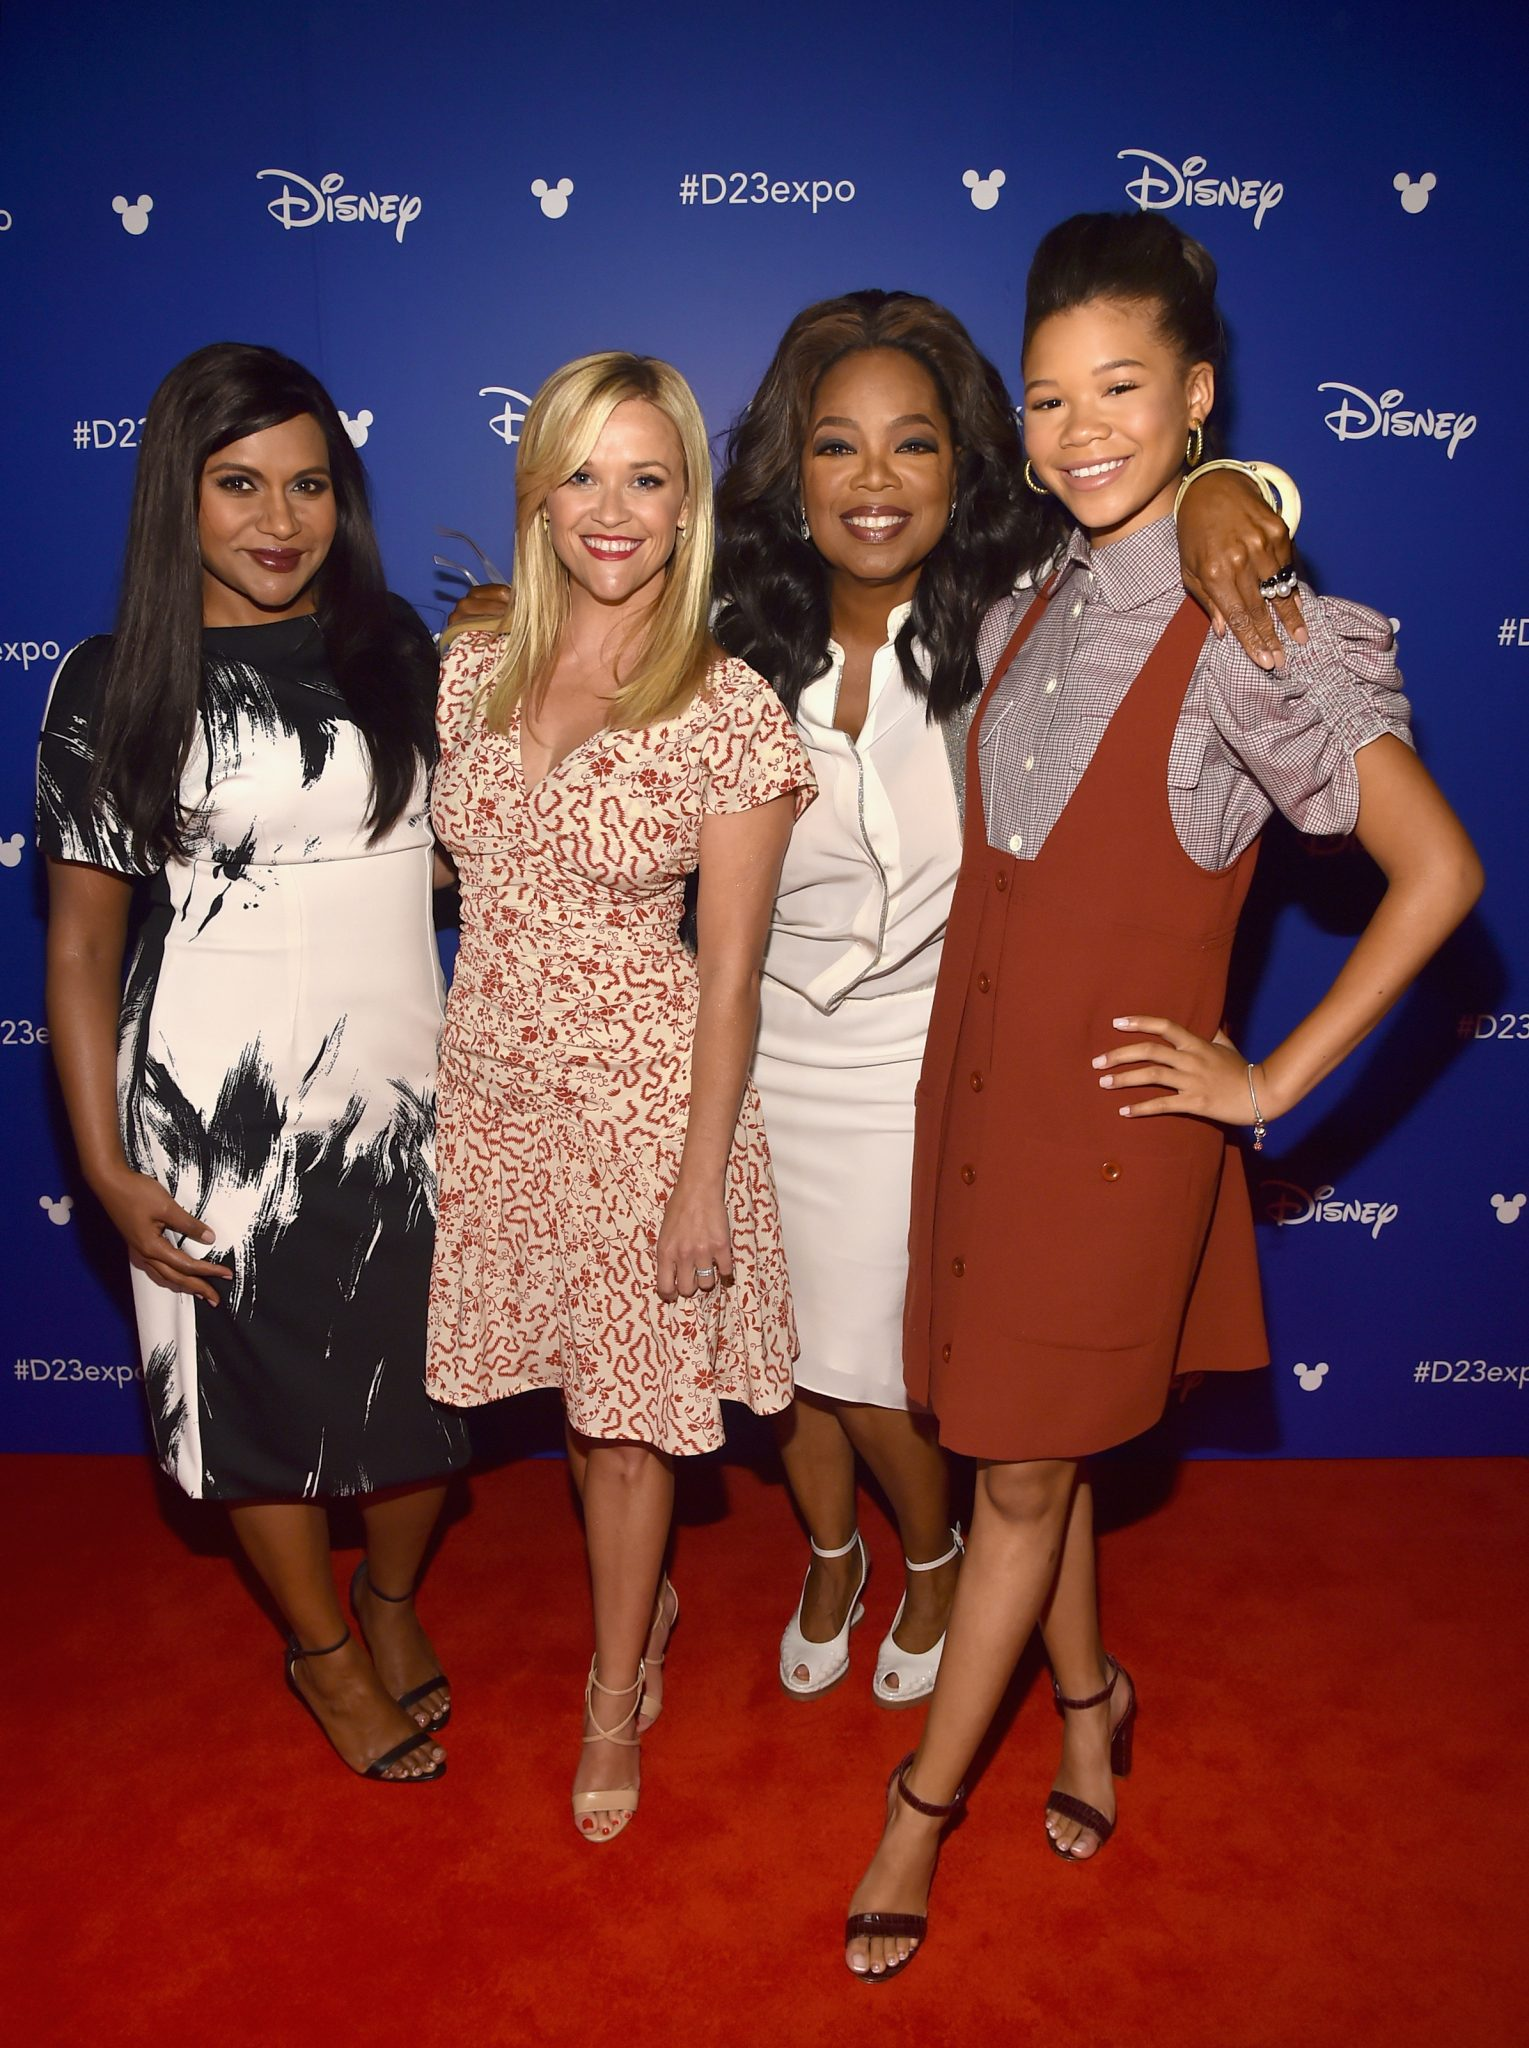 The Cast Of A Wrinkle In Time At #D23Expo